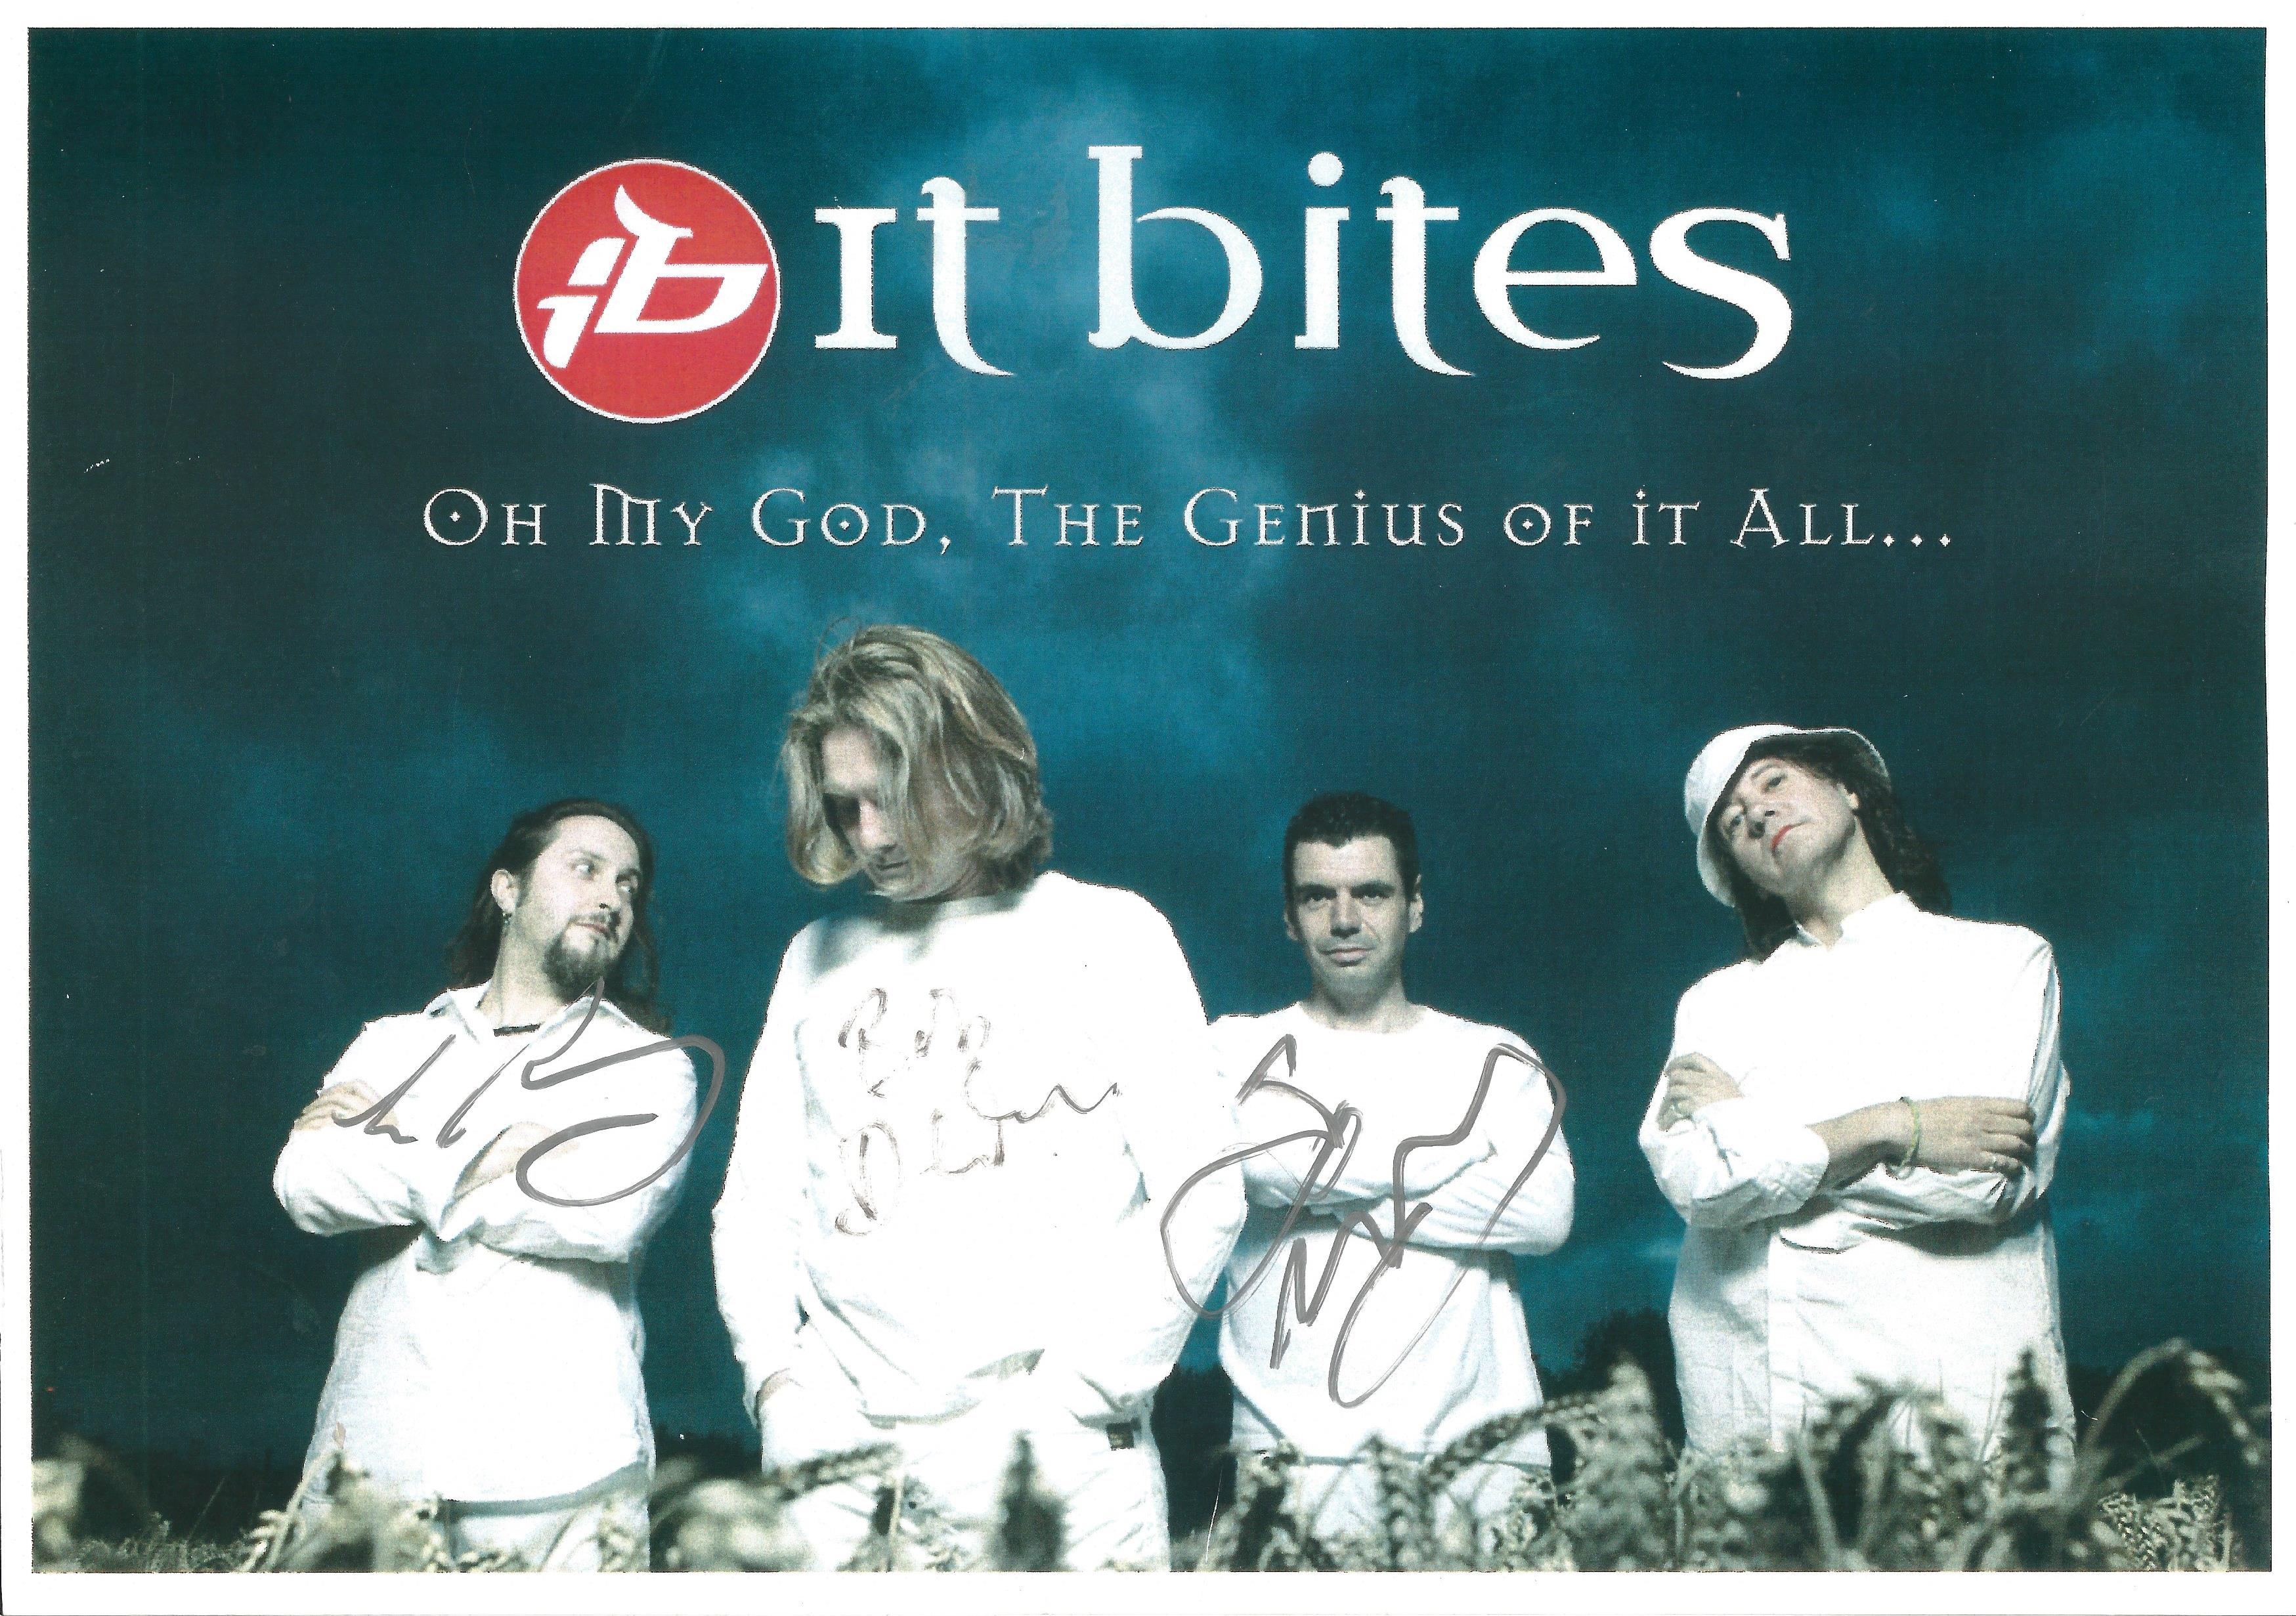 IT BITES Rock Band signed 8x12 Promo Photo . Good condition. All autographs come with a